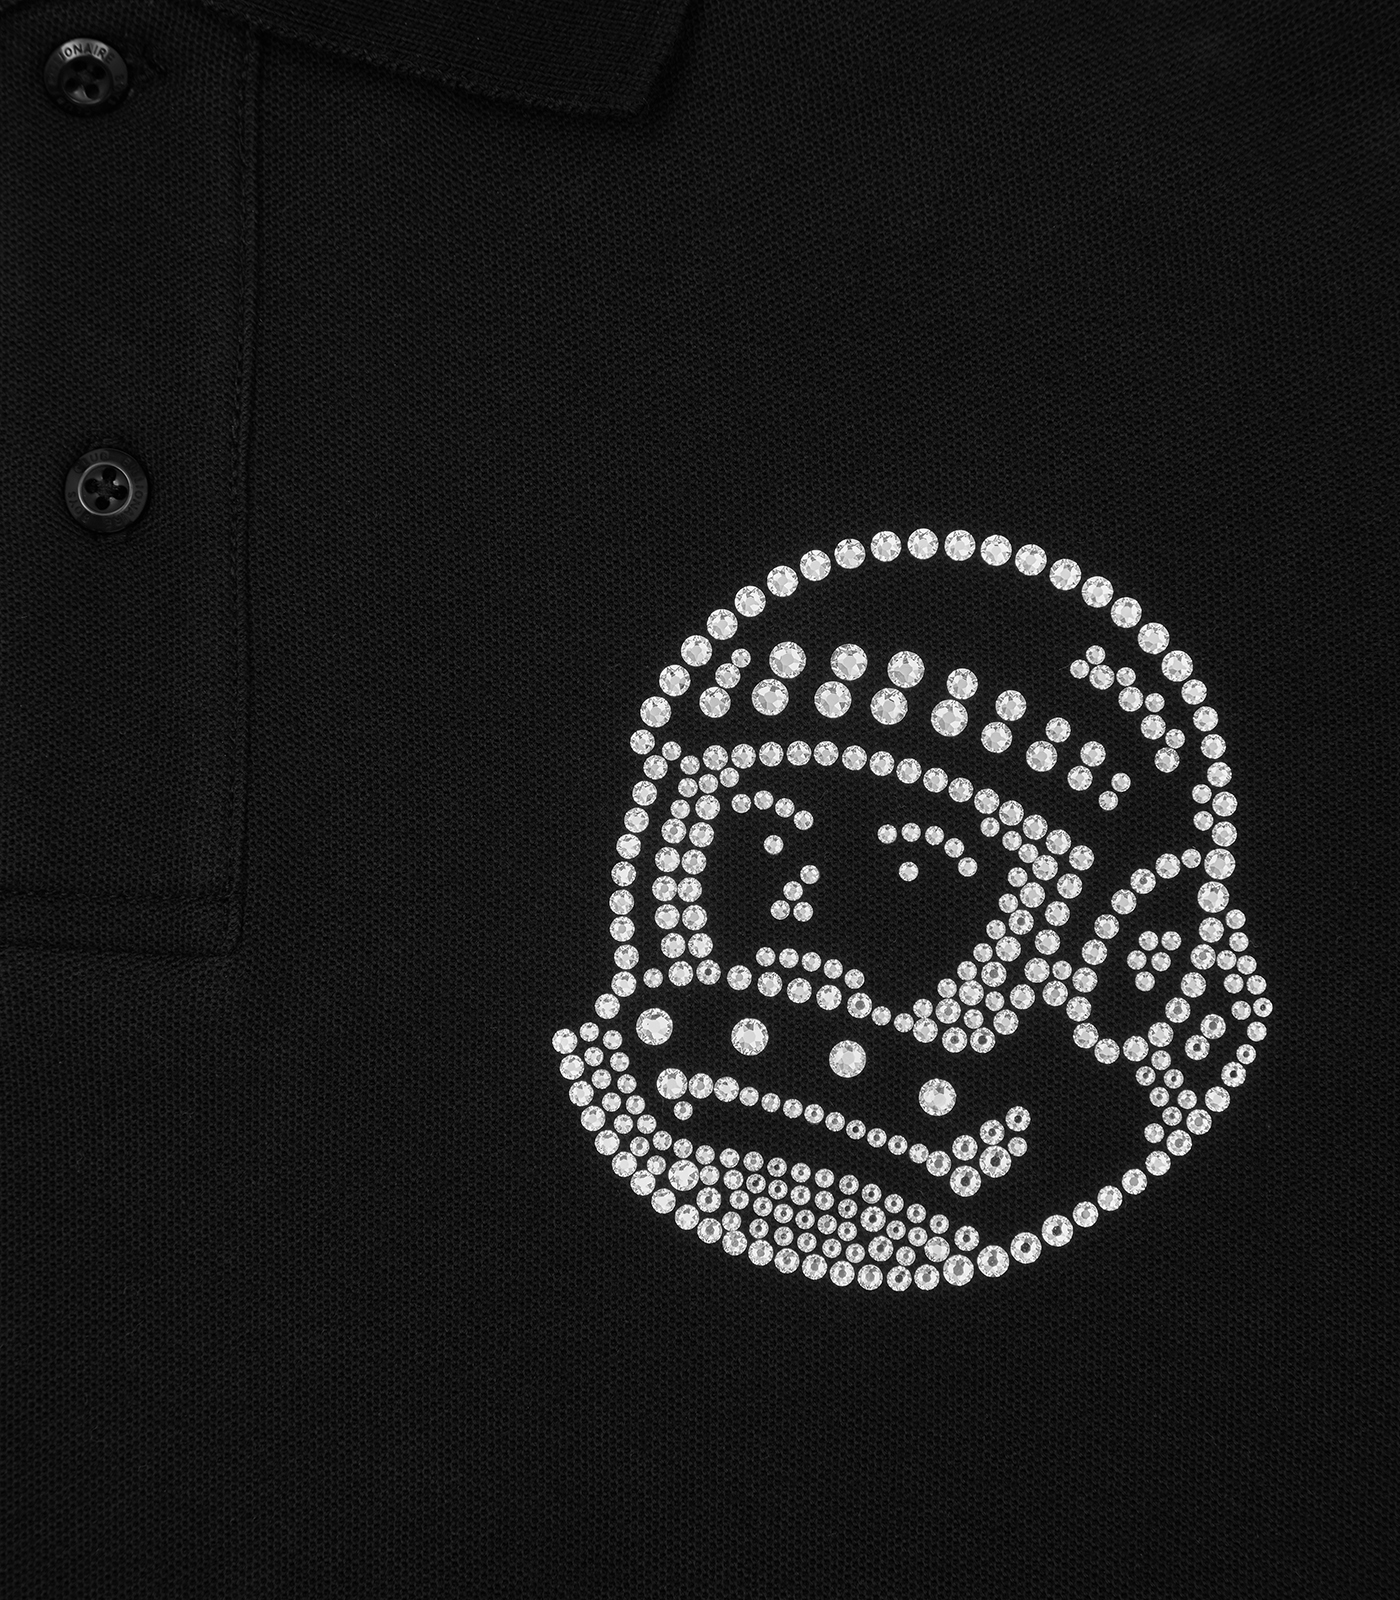 ASTRO HELMET POLO SHIRT embellished with Swarovski® Crystals